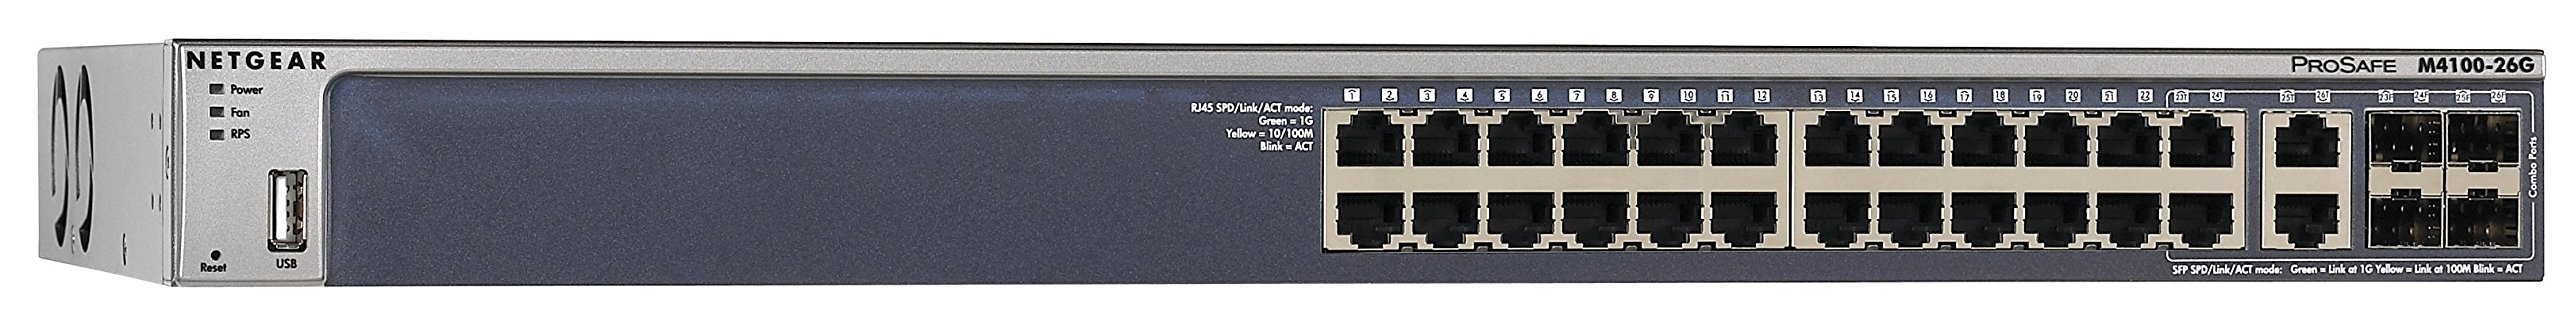 NETGEAR 26-Port Gigabit Ethernet Fully Managed Switch (GSM7224) - with 4 x 1G SFP, Desktop/Rackmount, and ProSAFE Limited Lifetime Protection, M4100 Series by NETGEAR